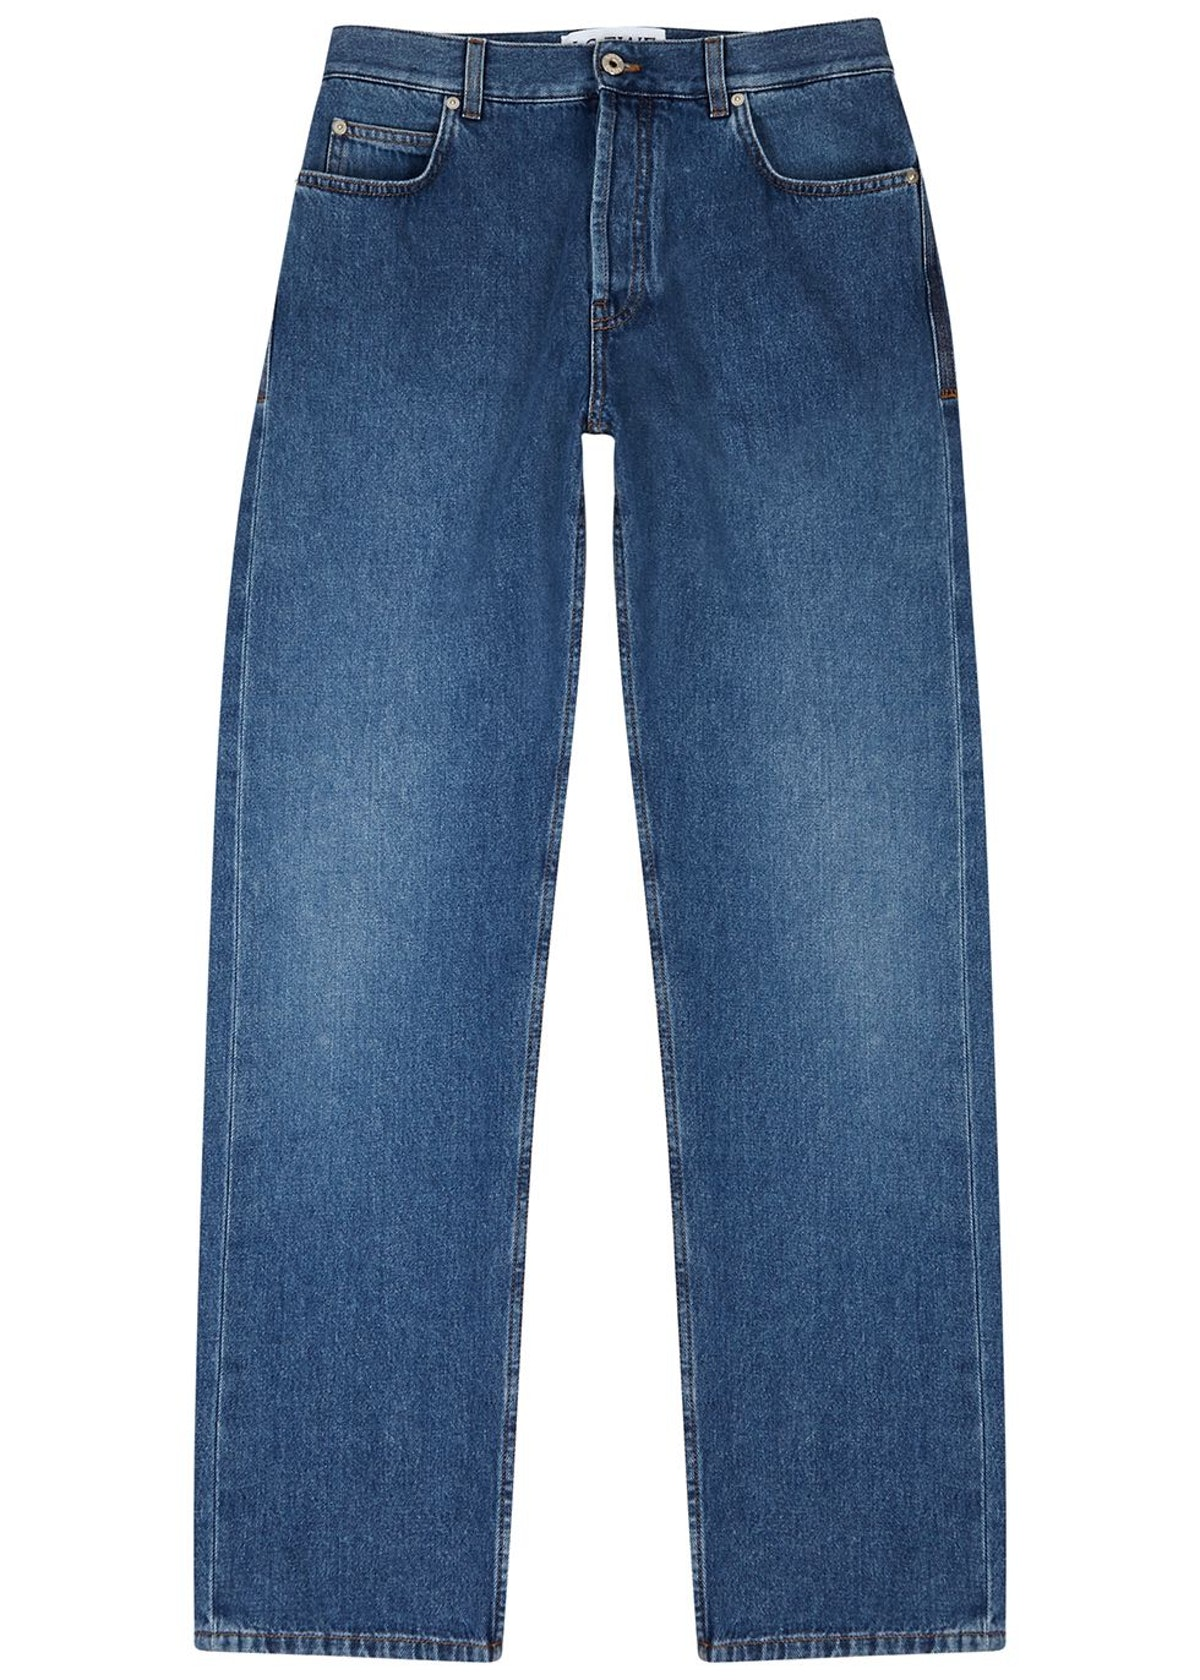 Blue logo tapered jeans: image 1